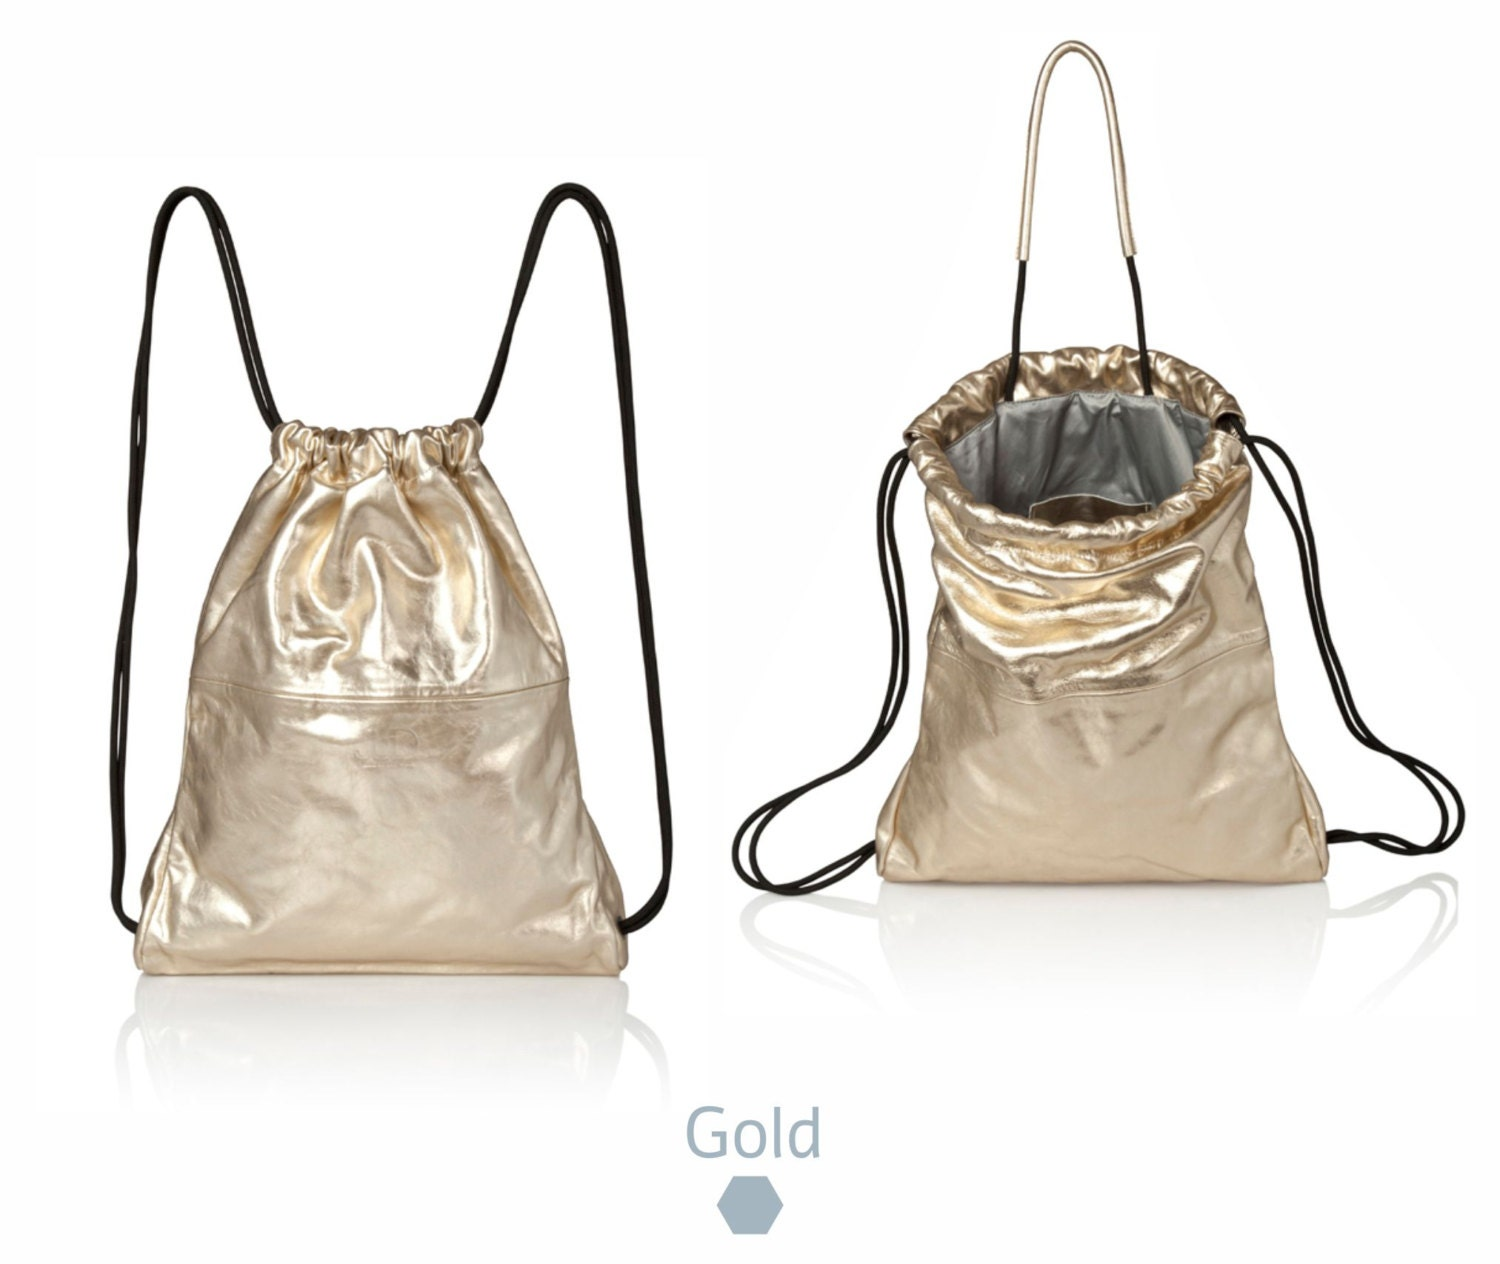 Metallic Gold Leather backpack purse metallic leather bag